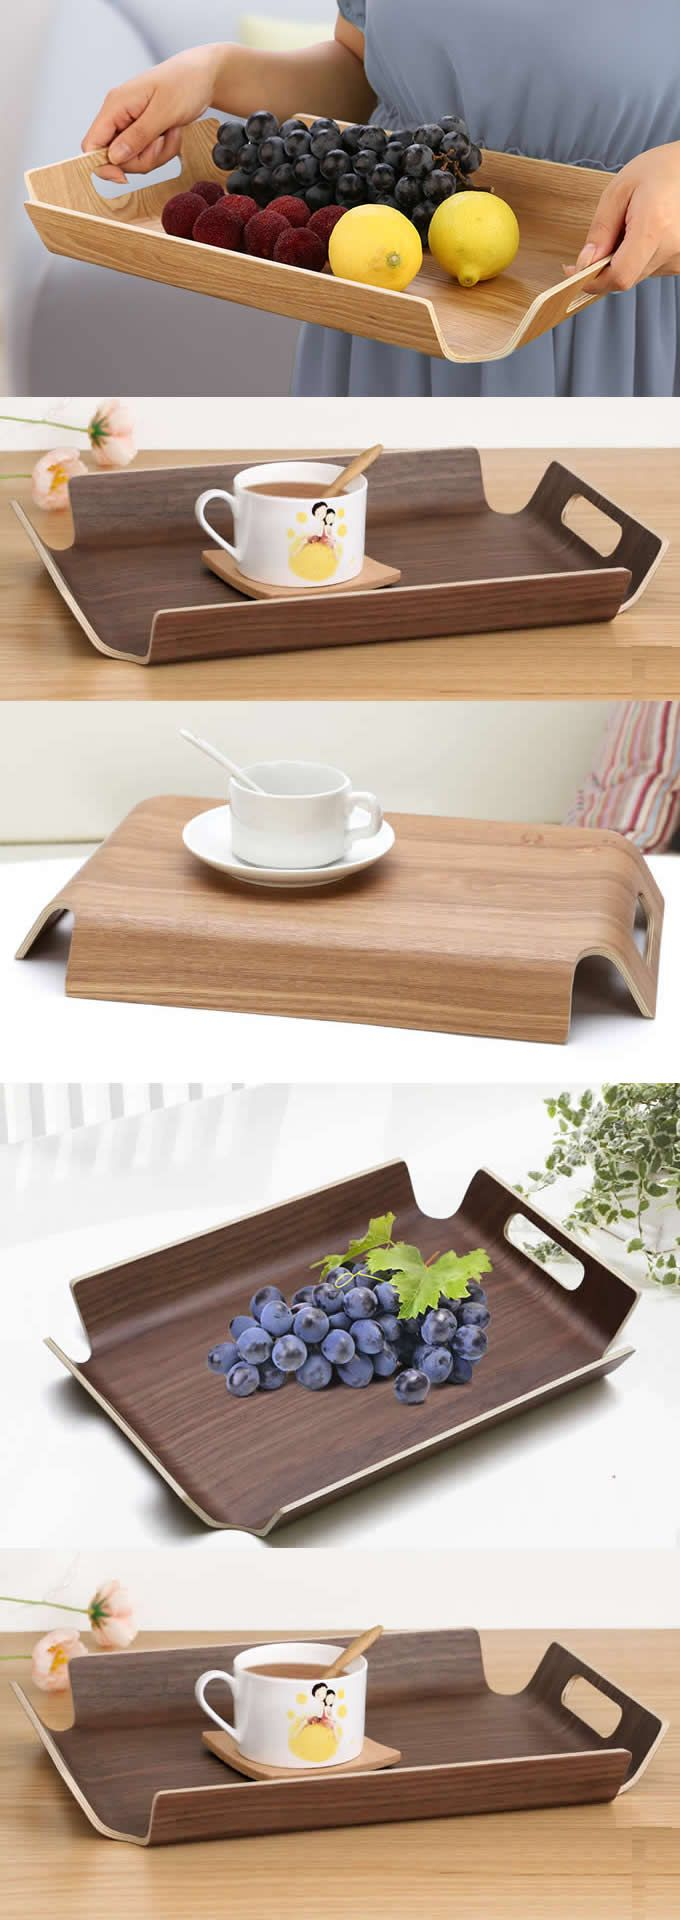 Really Like This Wooden Fruit Cake Snack Vegetable Serving Tray Plate With  Handles For Party Idea,Can Be Used As A Mug Holder Office Desk Stationery  ...